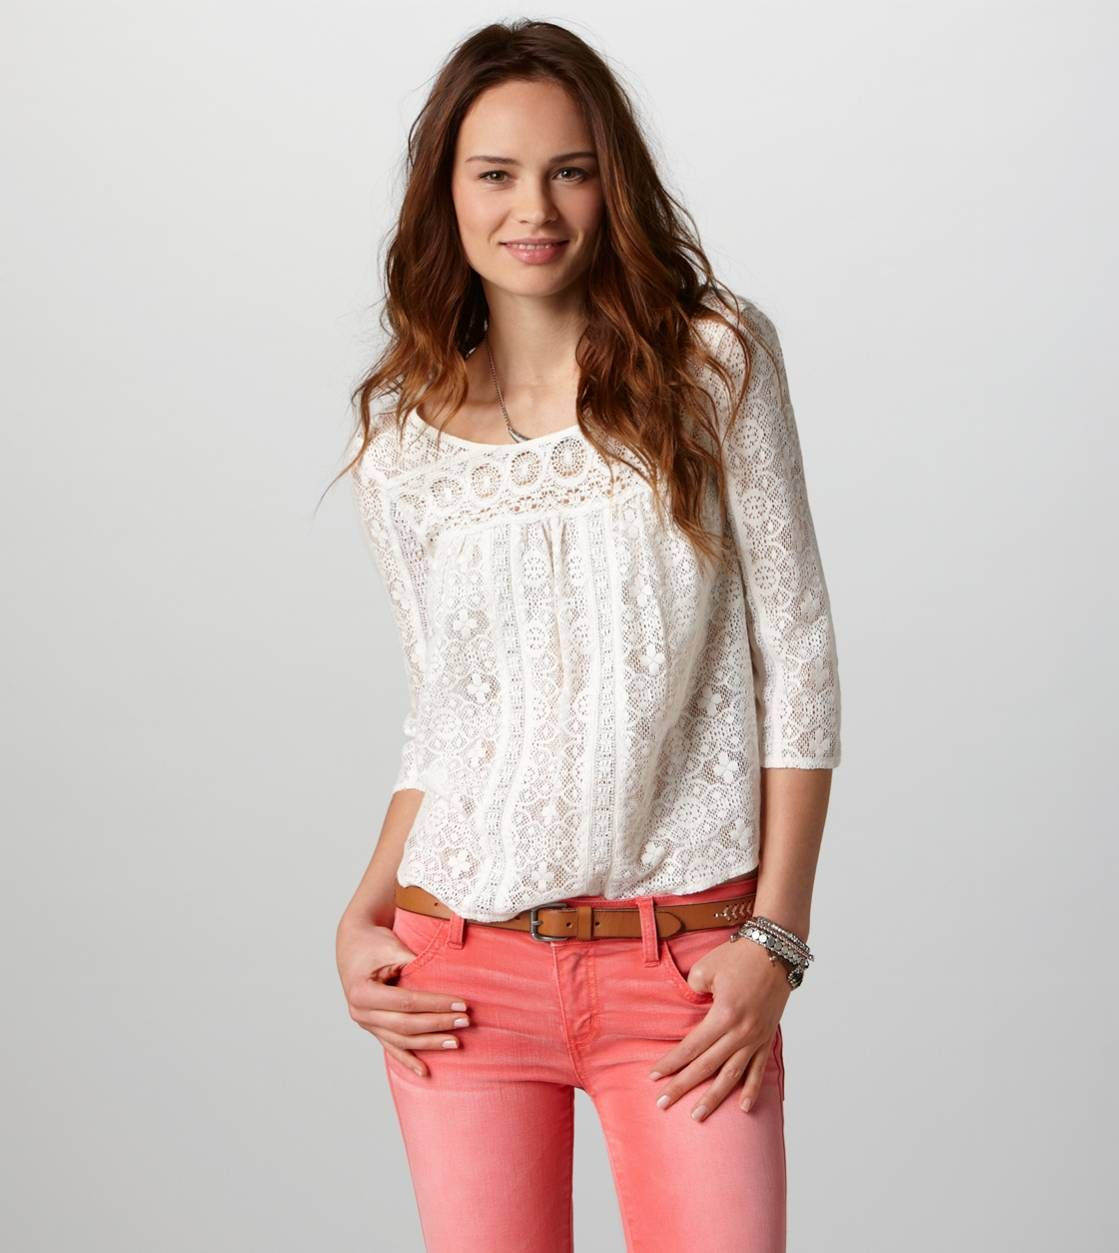 AE Paneled Lace Top w/ coral skinny jeans-Just bought my first pair of coral skinnys so I'm looking for inspiration!